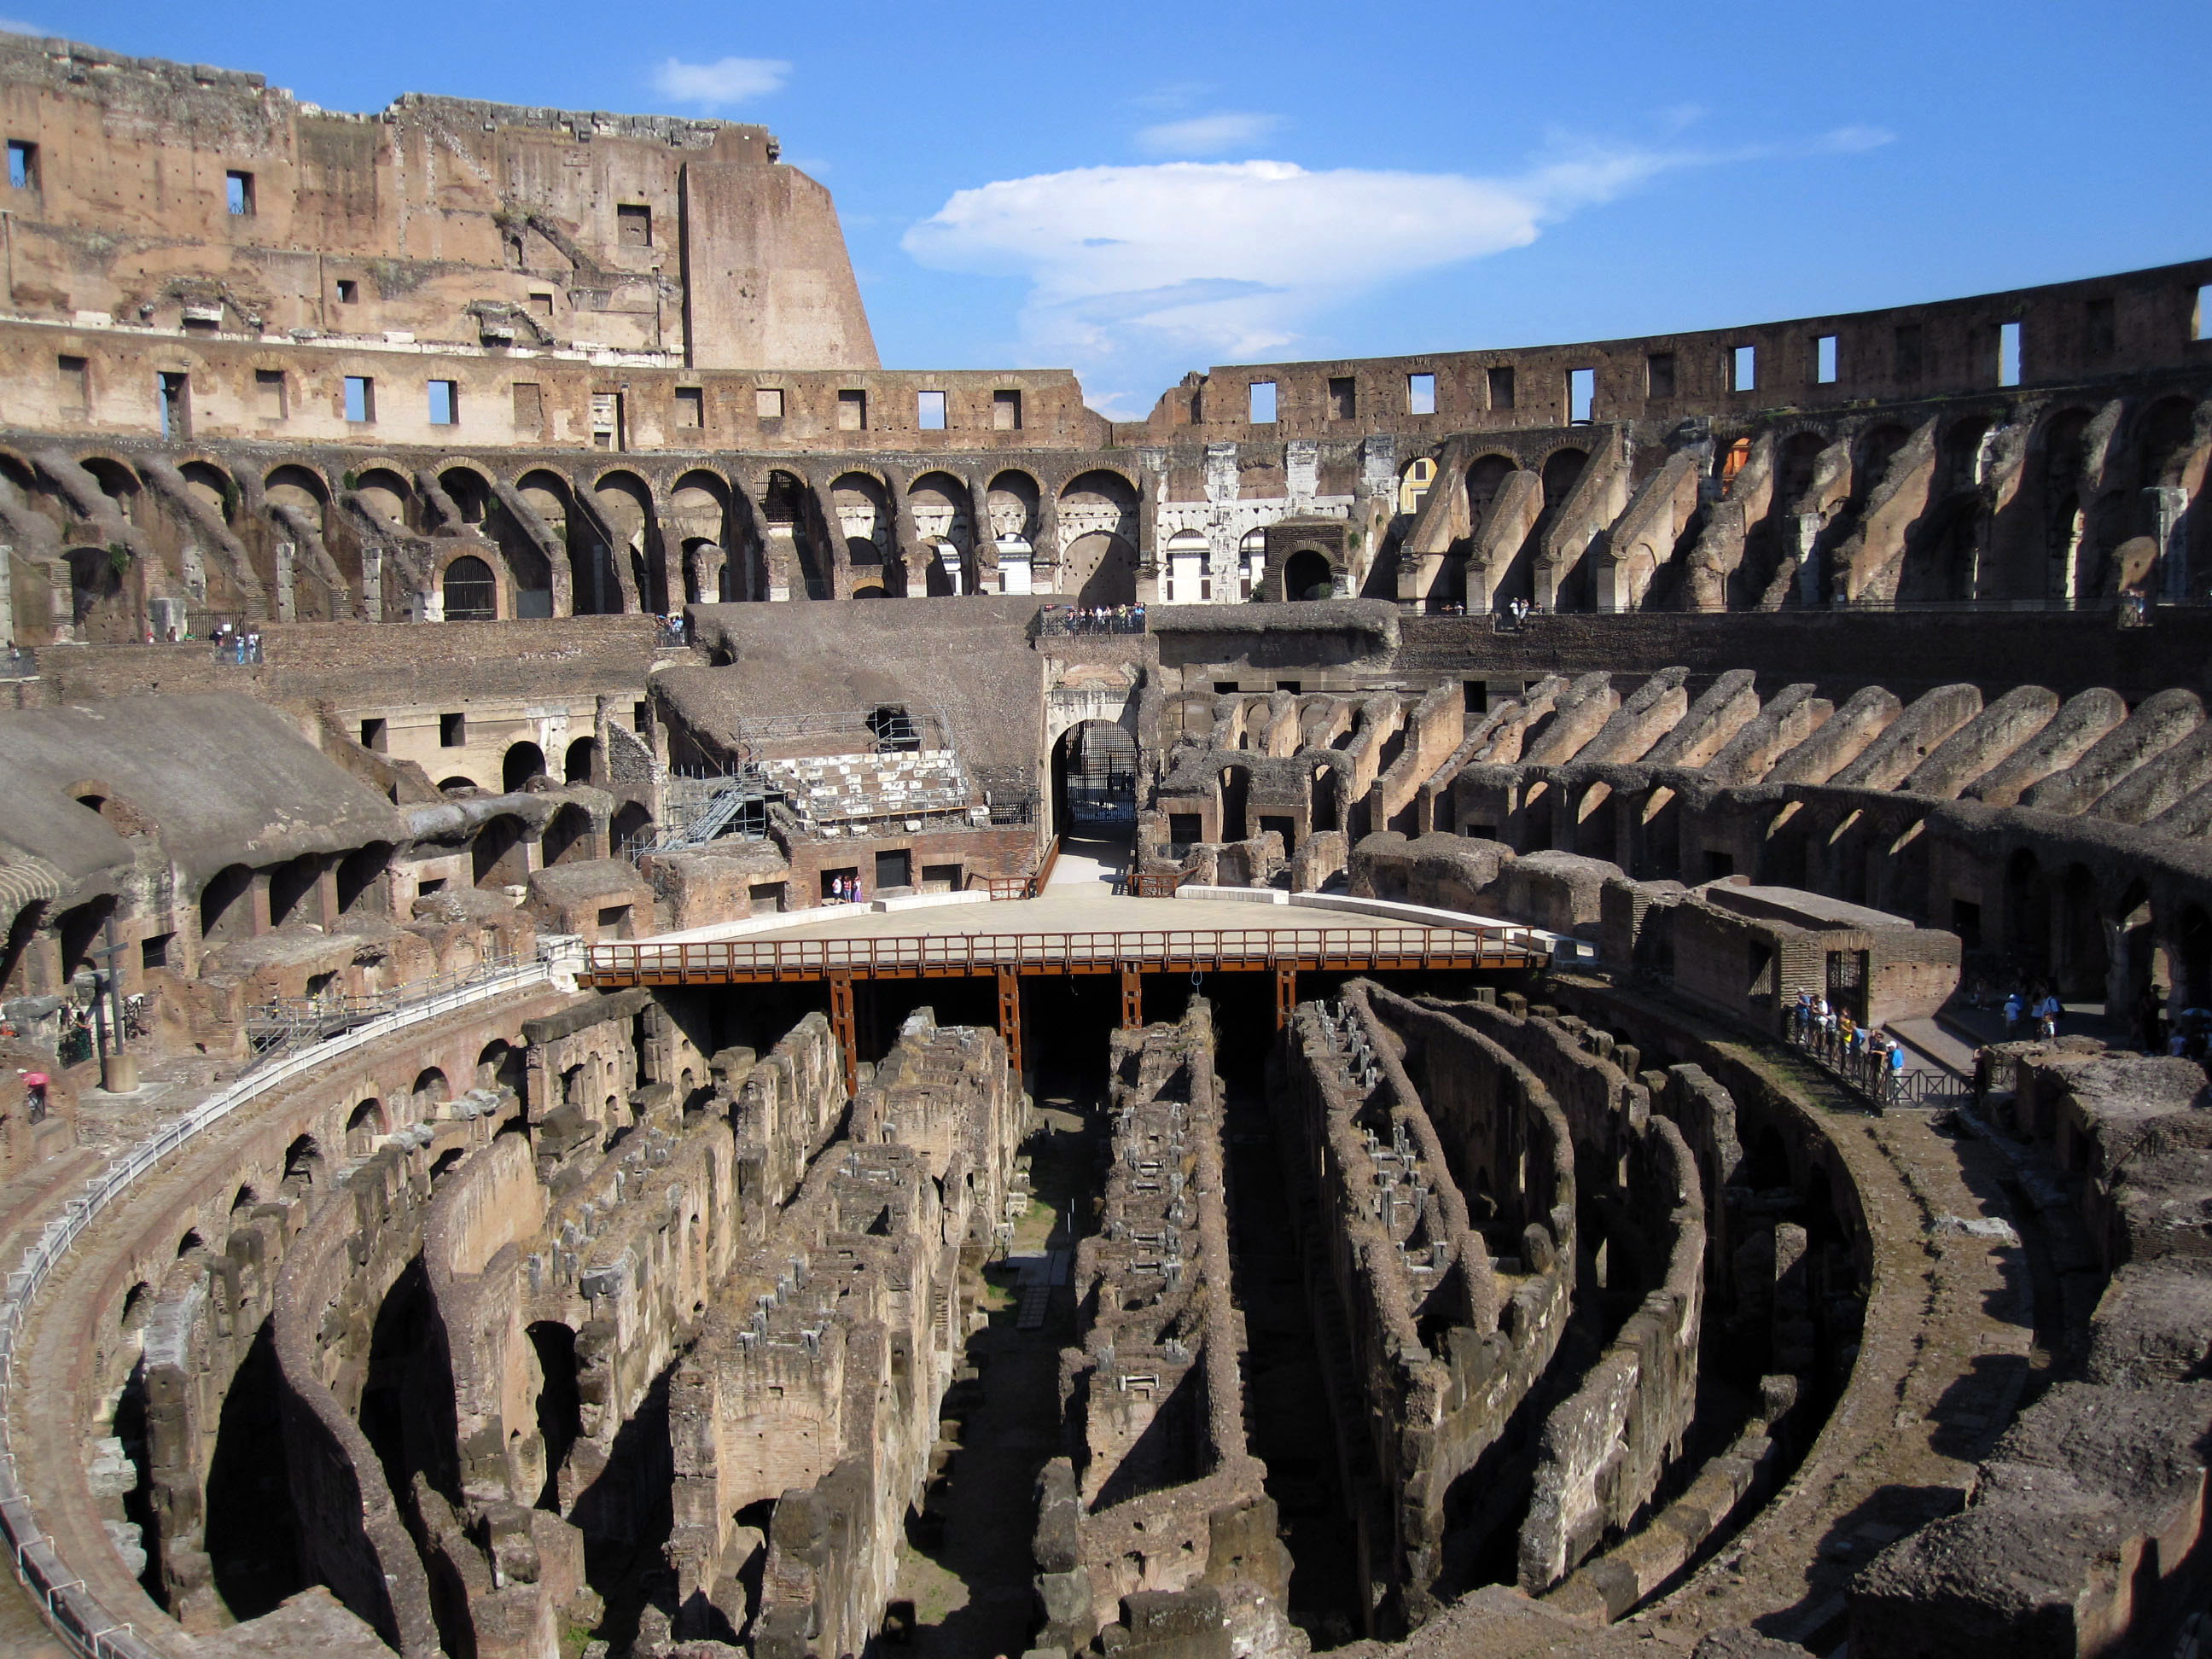 Slave tears of rome: tough life in ancient rome